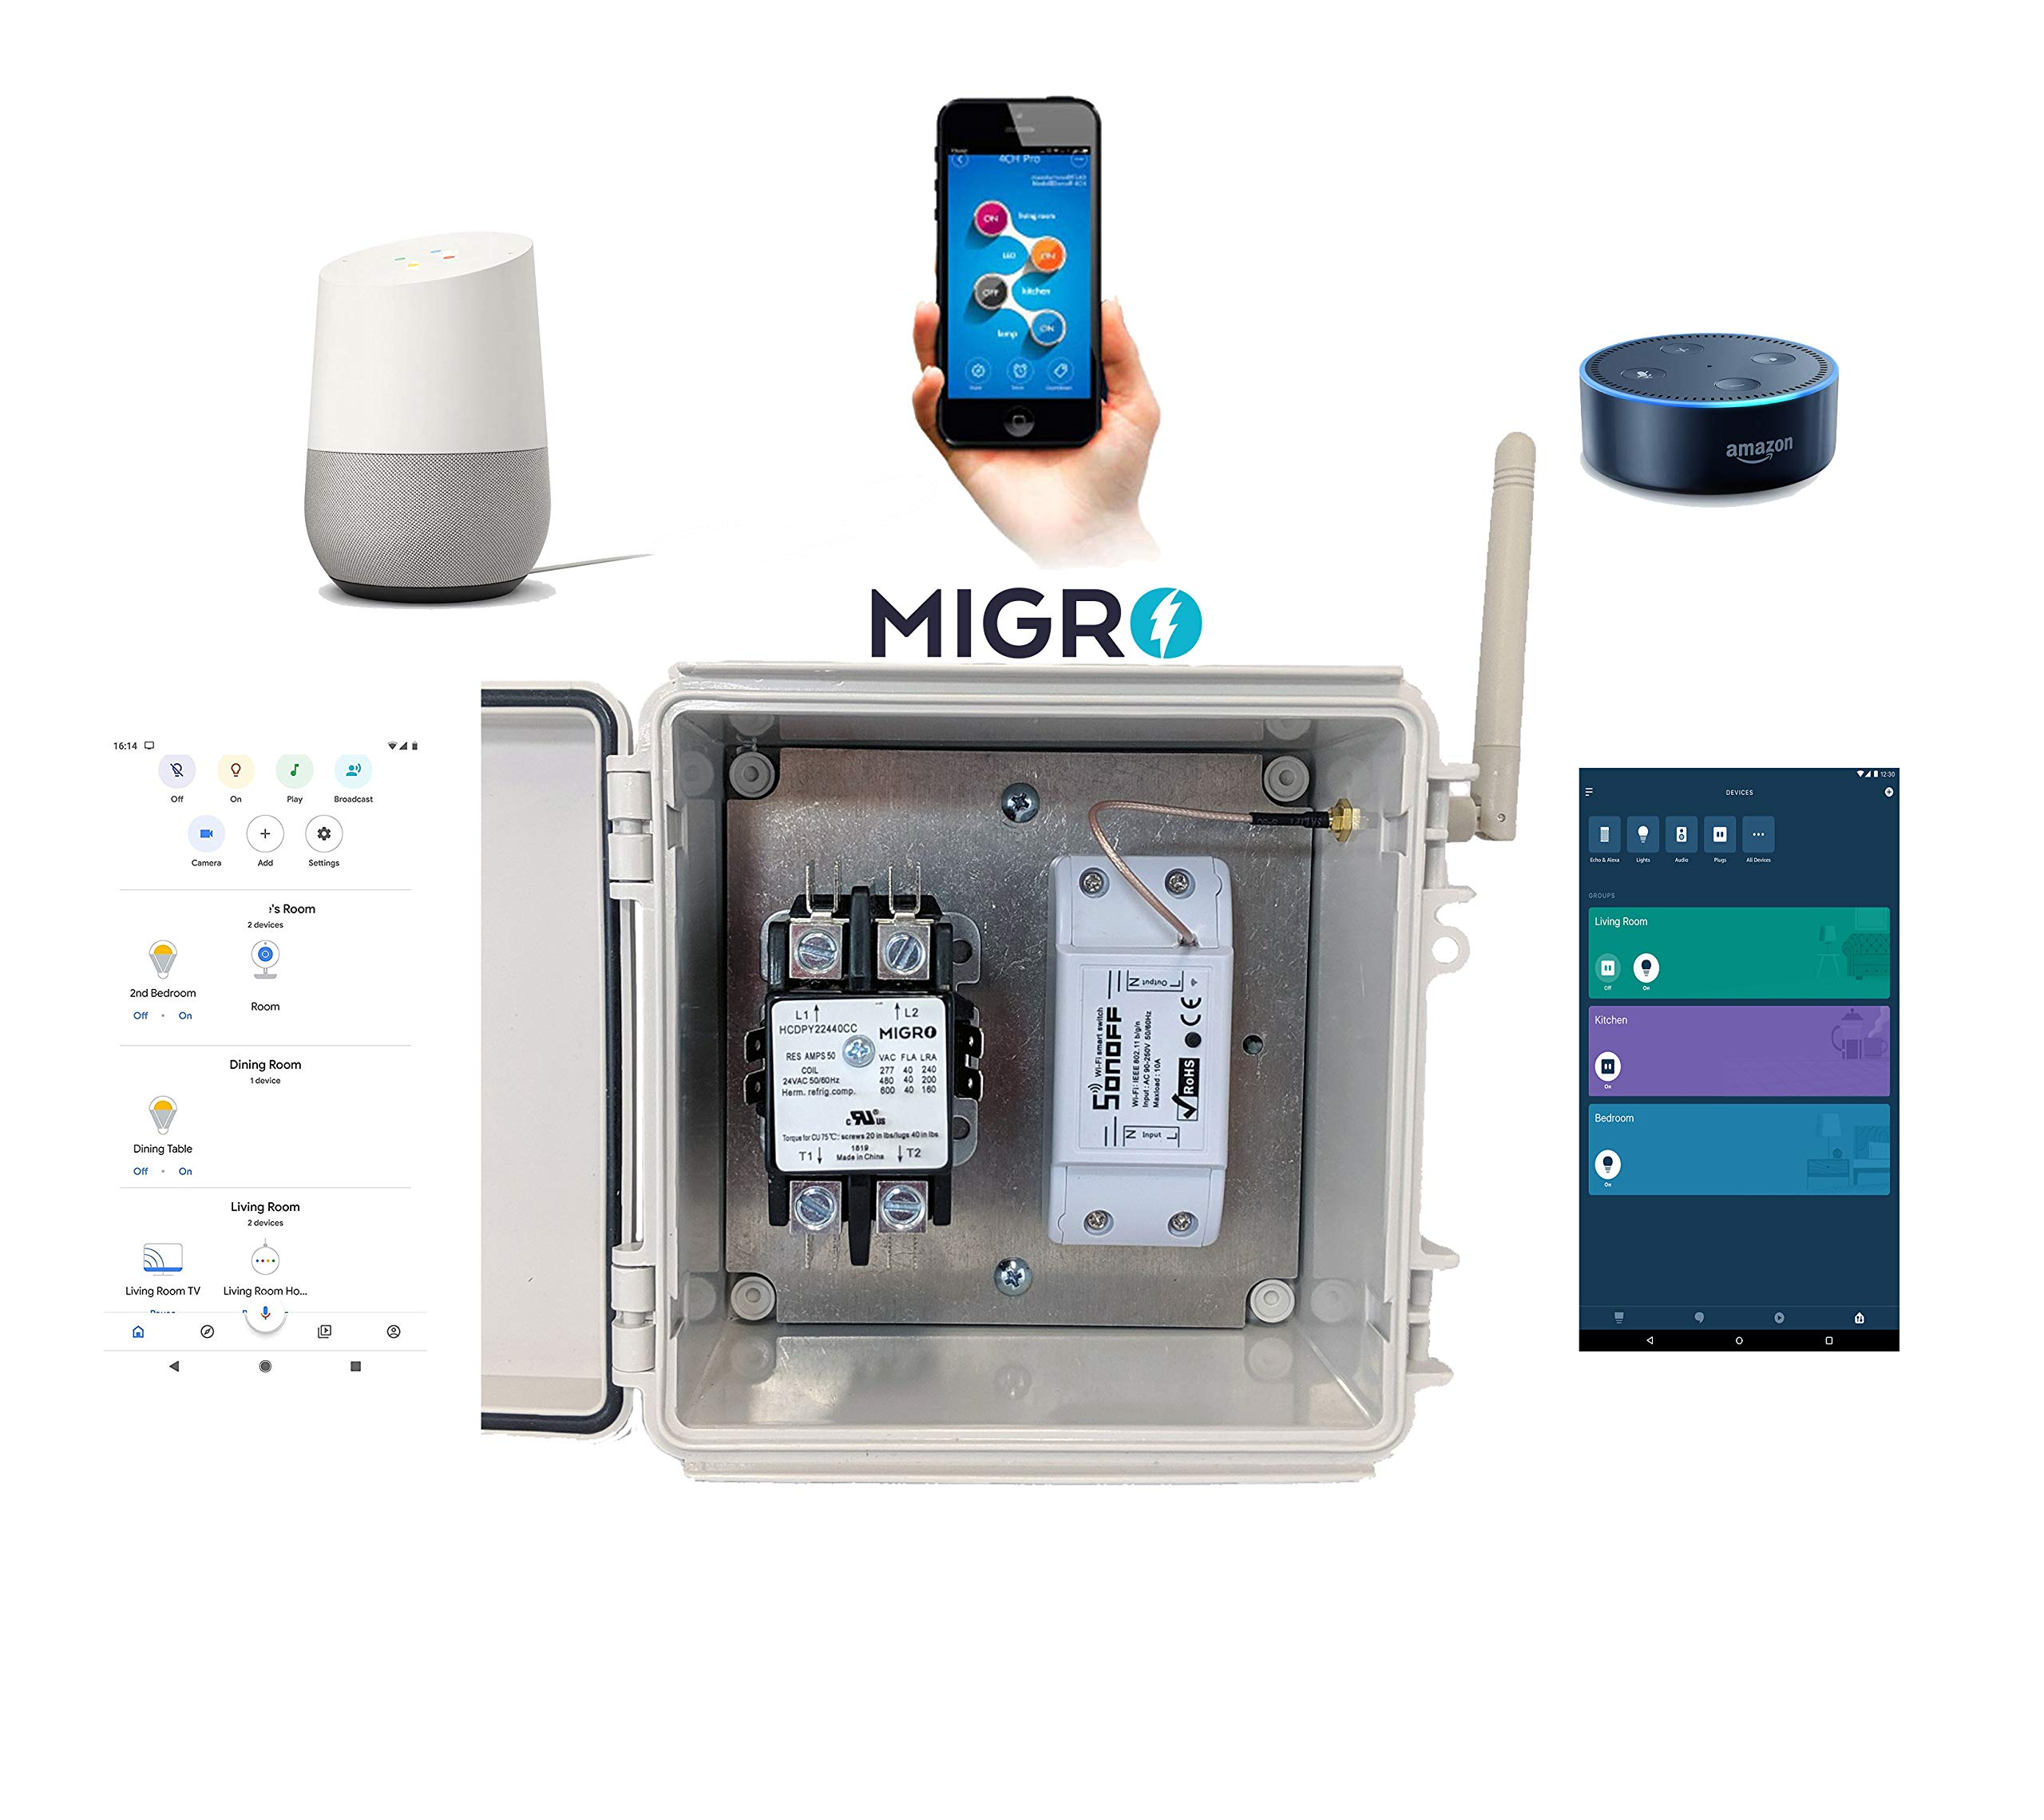 Migro Outdoor Smart Wi-Fi Outlet Box, Heavy Duty 50A Resistive 120VAC 40A 5HP Wireless Pump Control Timer Switch, Compatible with Smart Phone, Alexa, Google Home, IFTTT UL Listed by Migro